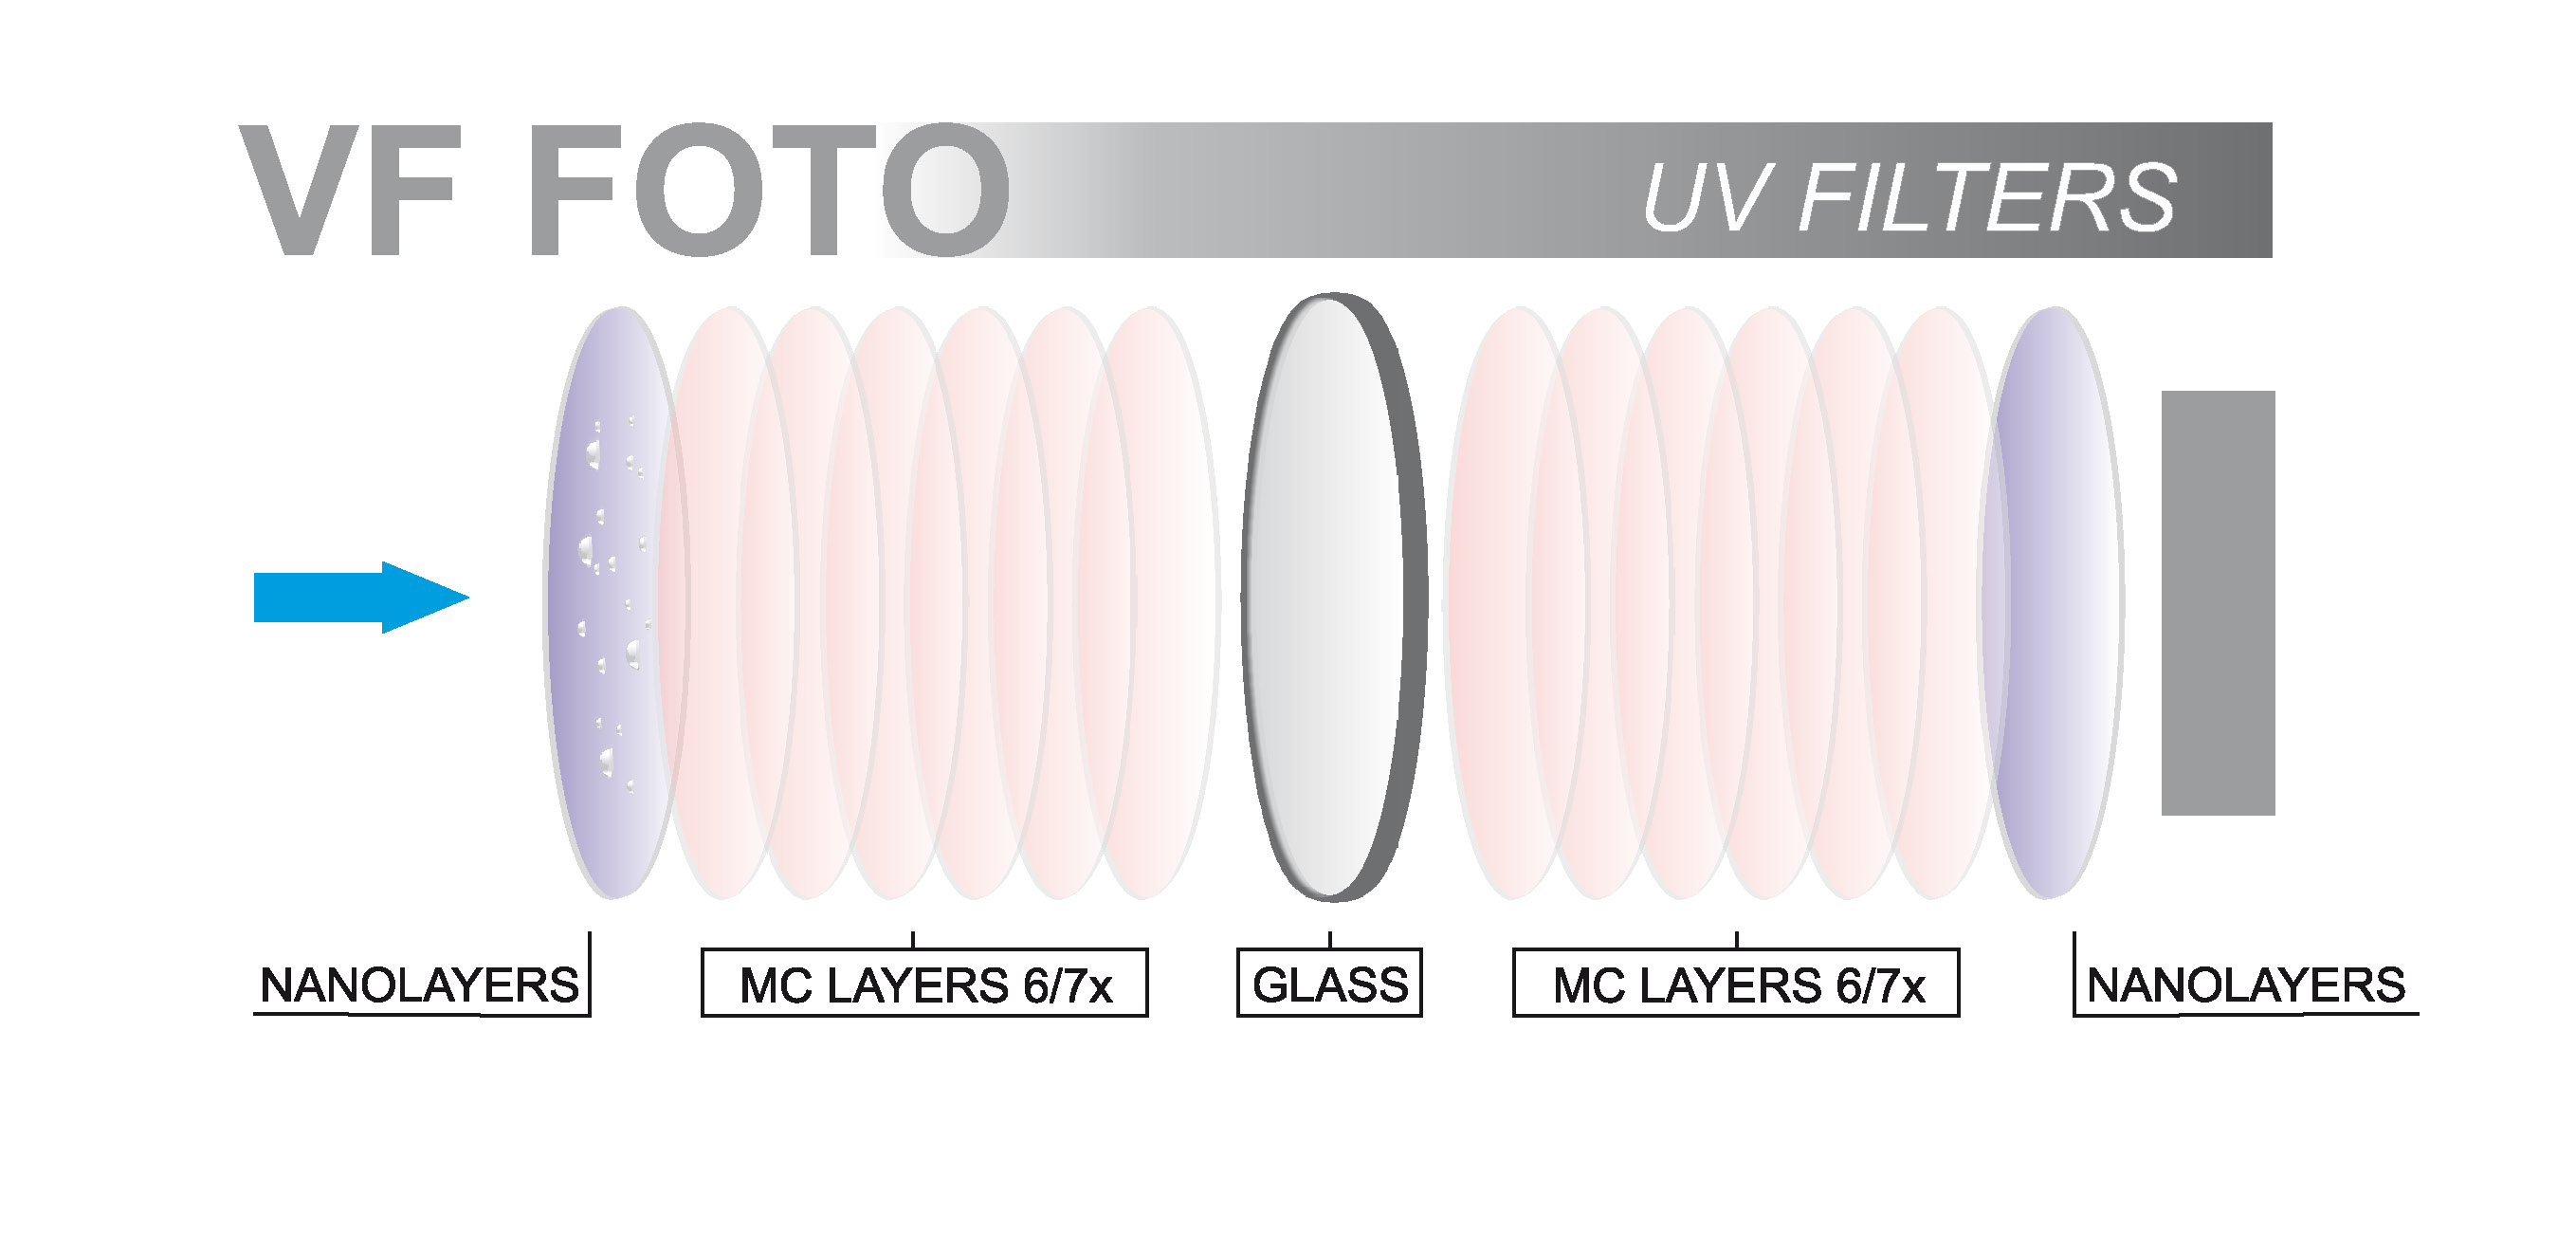 schematic cross-sectional view of the layers of the UV filter VFFOTO GS 58 mm